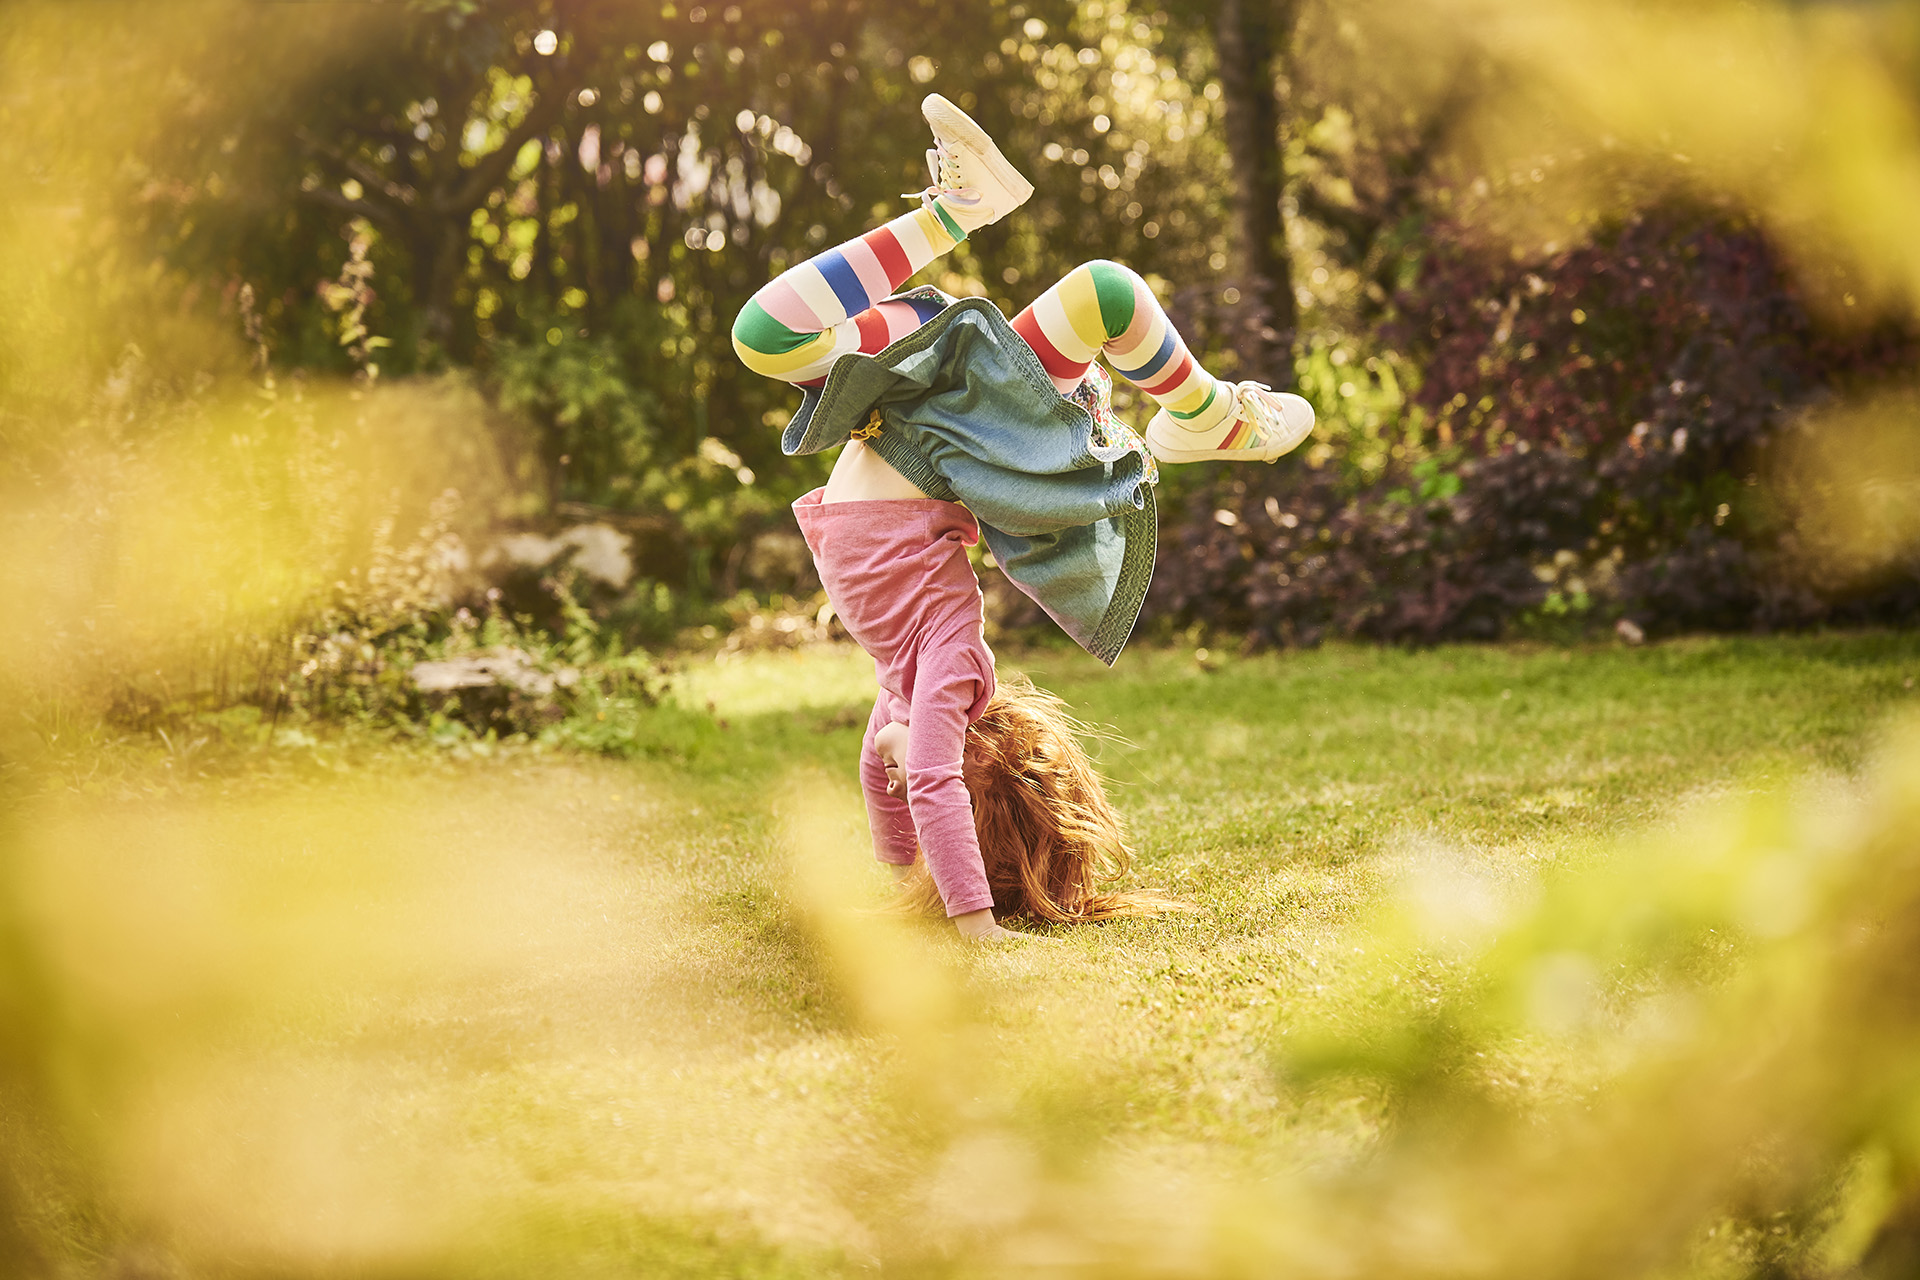 A young girl with stripy tights doing a handstand in her garden